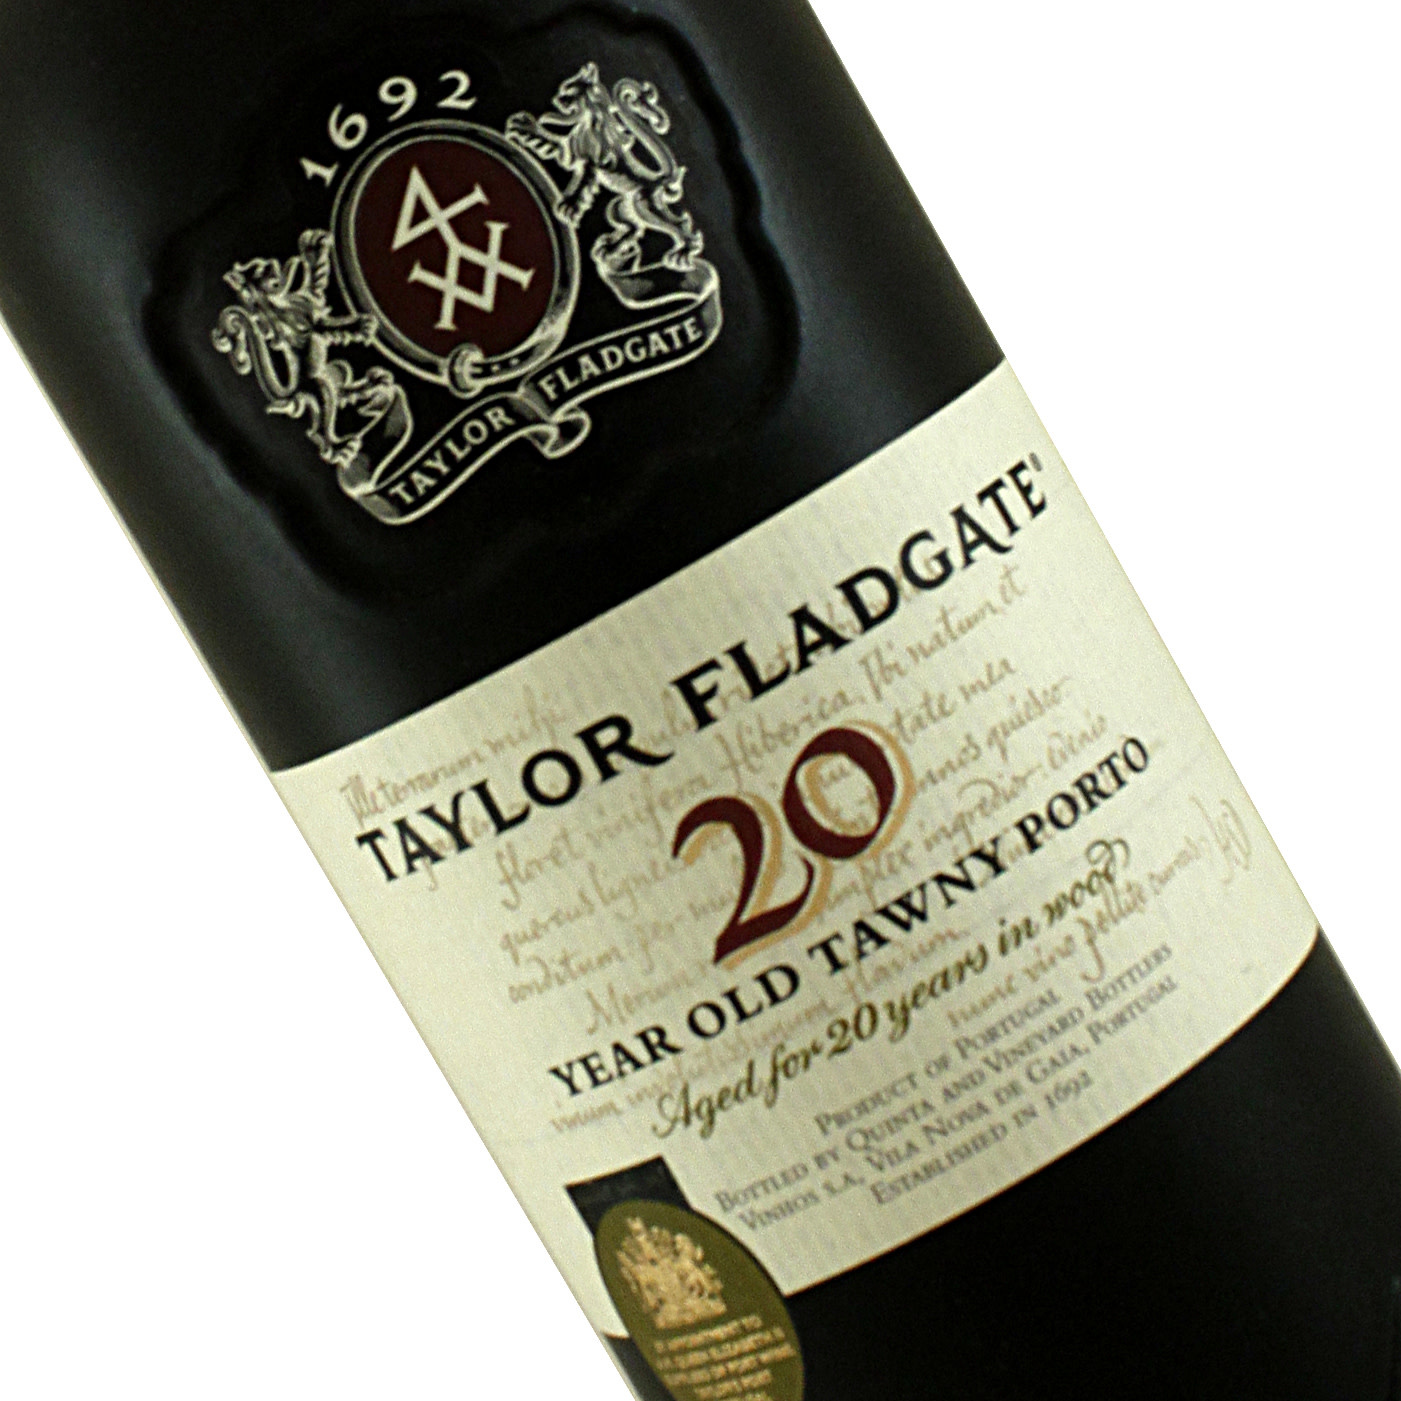 Taylor Fladgate 20 Year Old Tawny Porto, Portugal